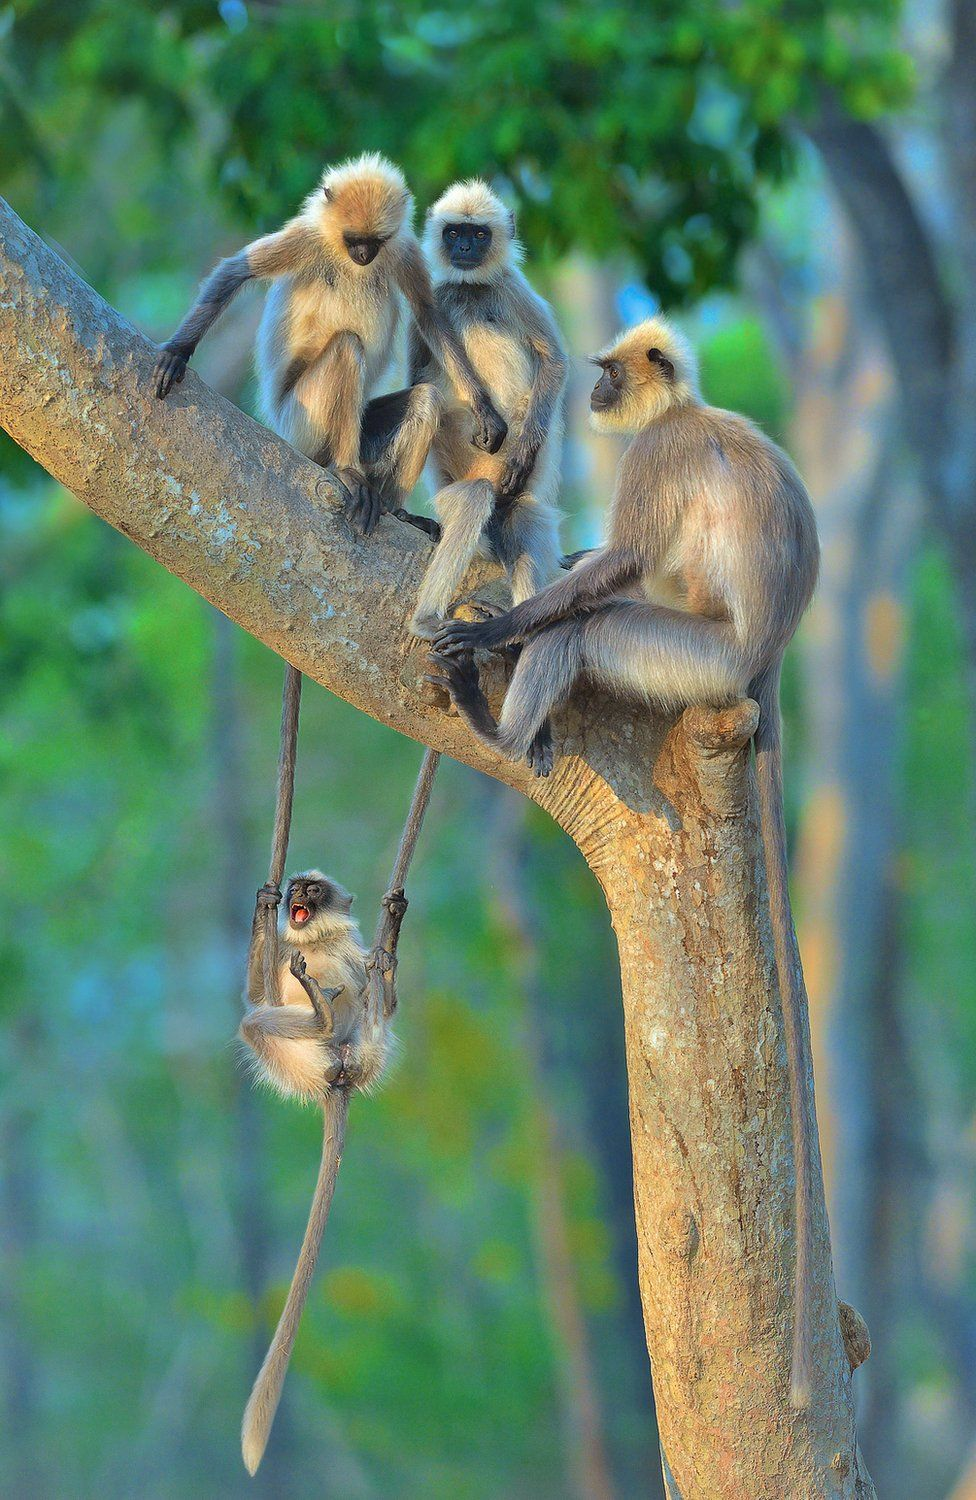 A monkey swinging on the tails of two other monkeys